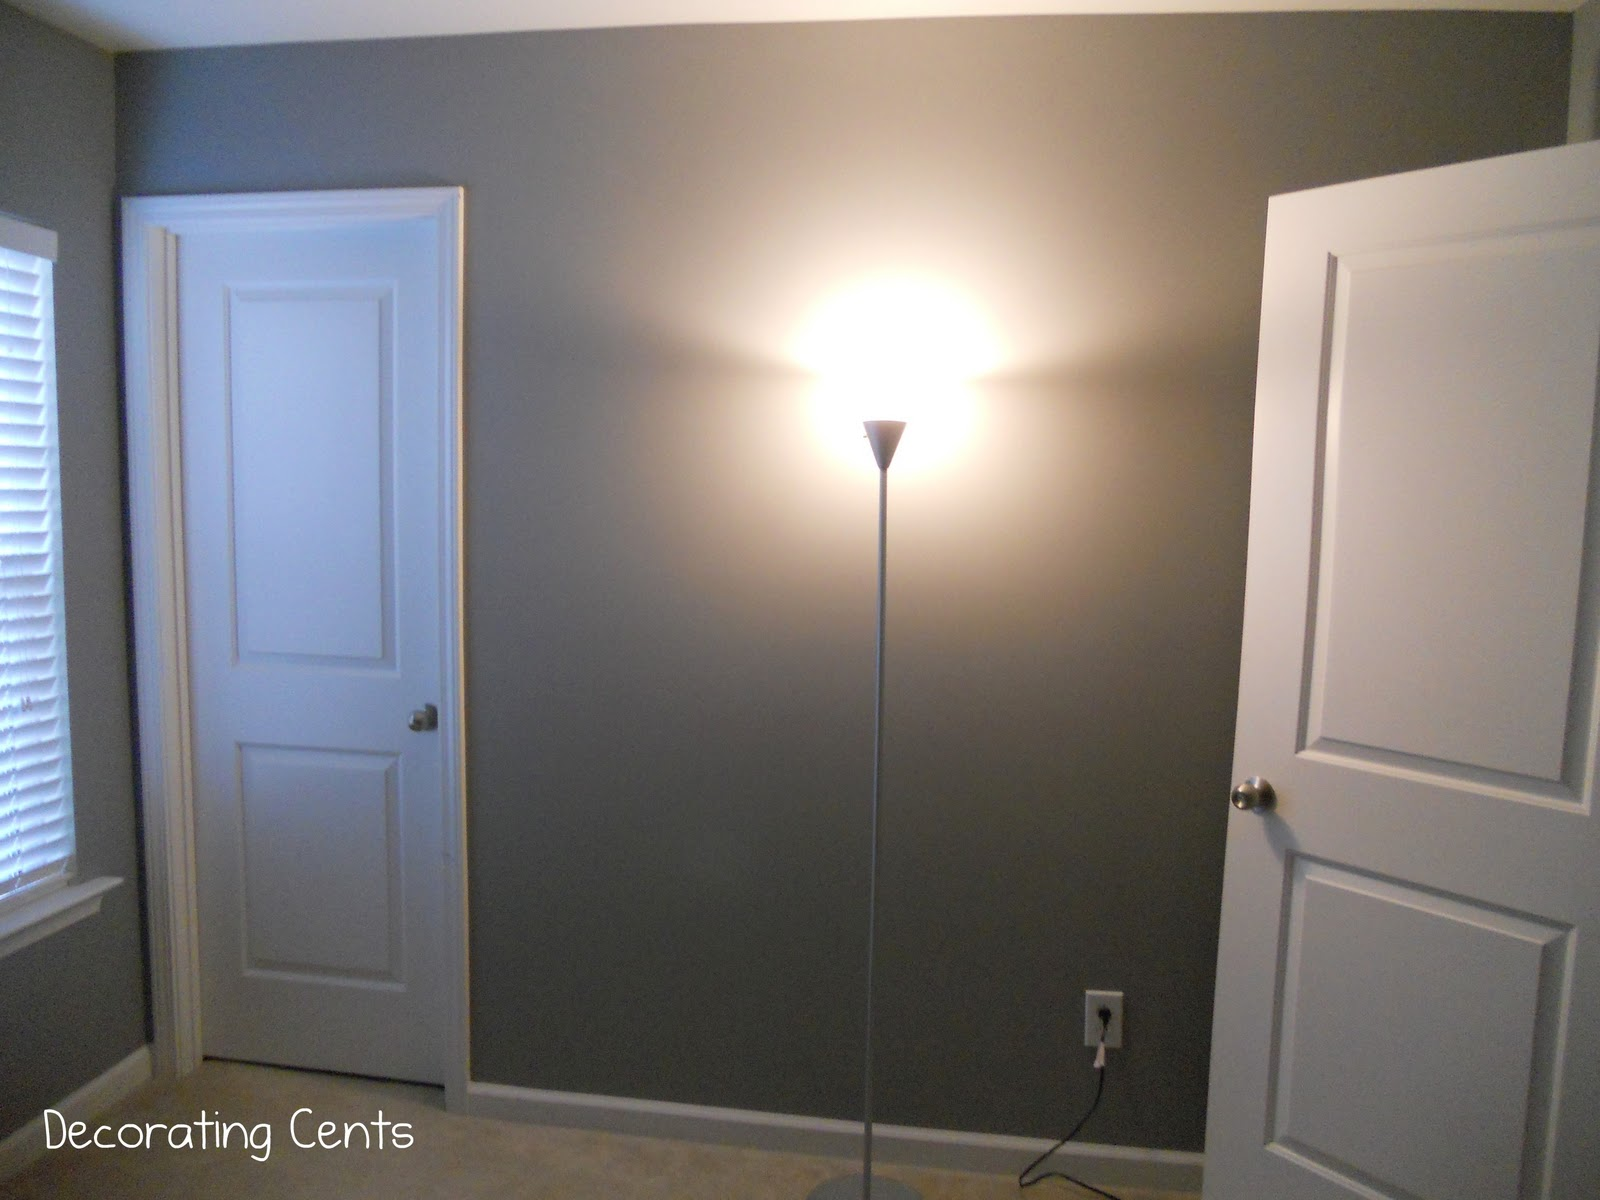 Decorating Cents  Feeling Gray The color is Behr s Grayve Yard  It s a medium shade of gray  It s hard to  get a good picture of this room now because of the dark wall color and  light from